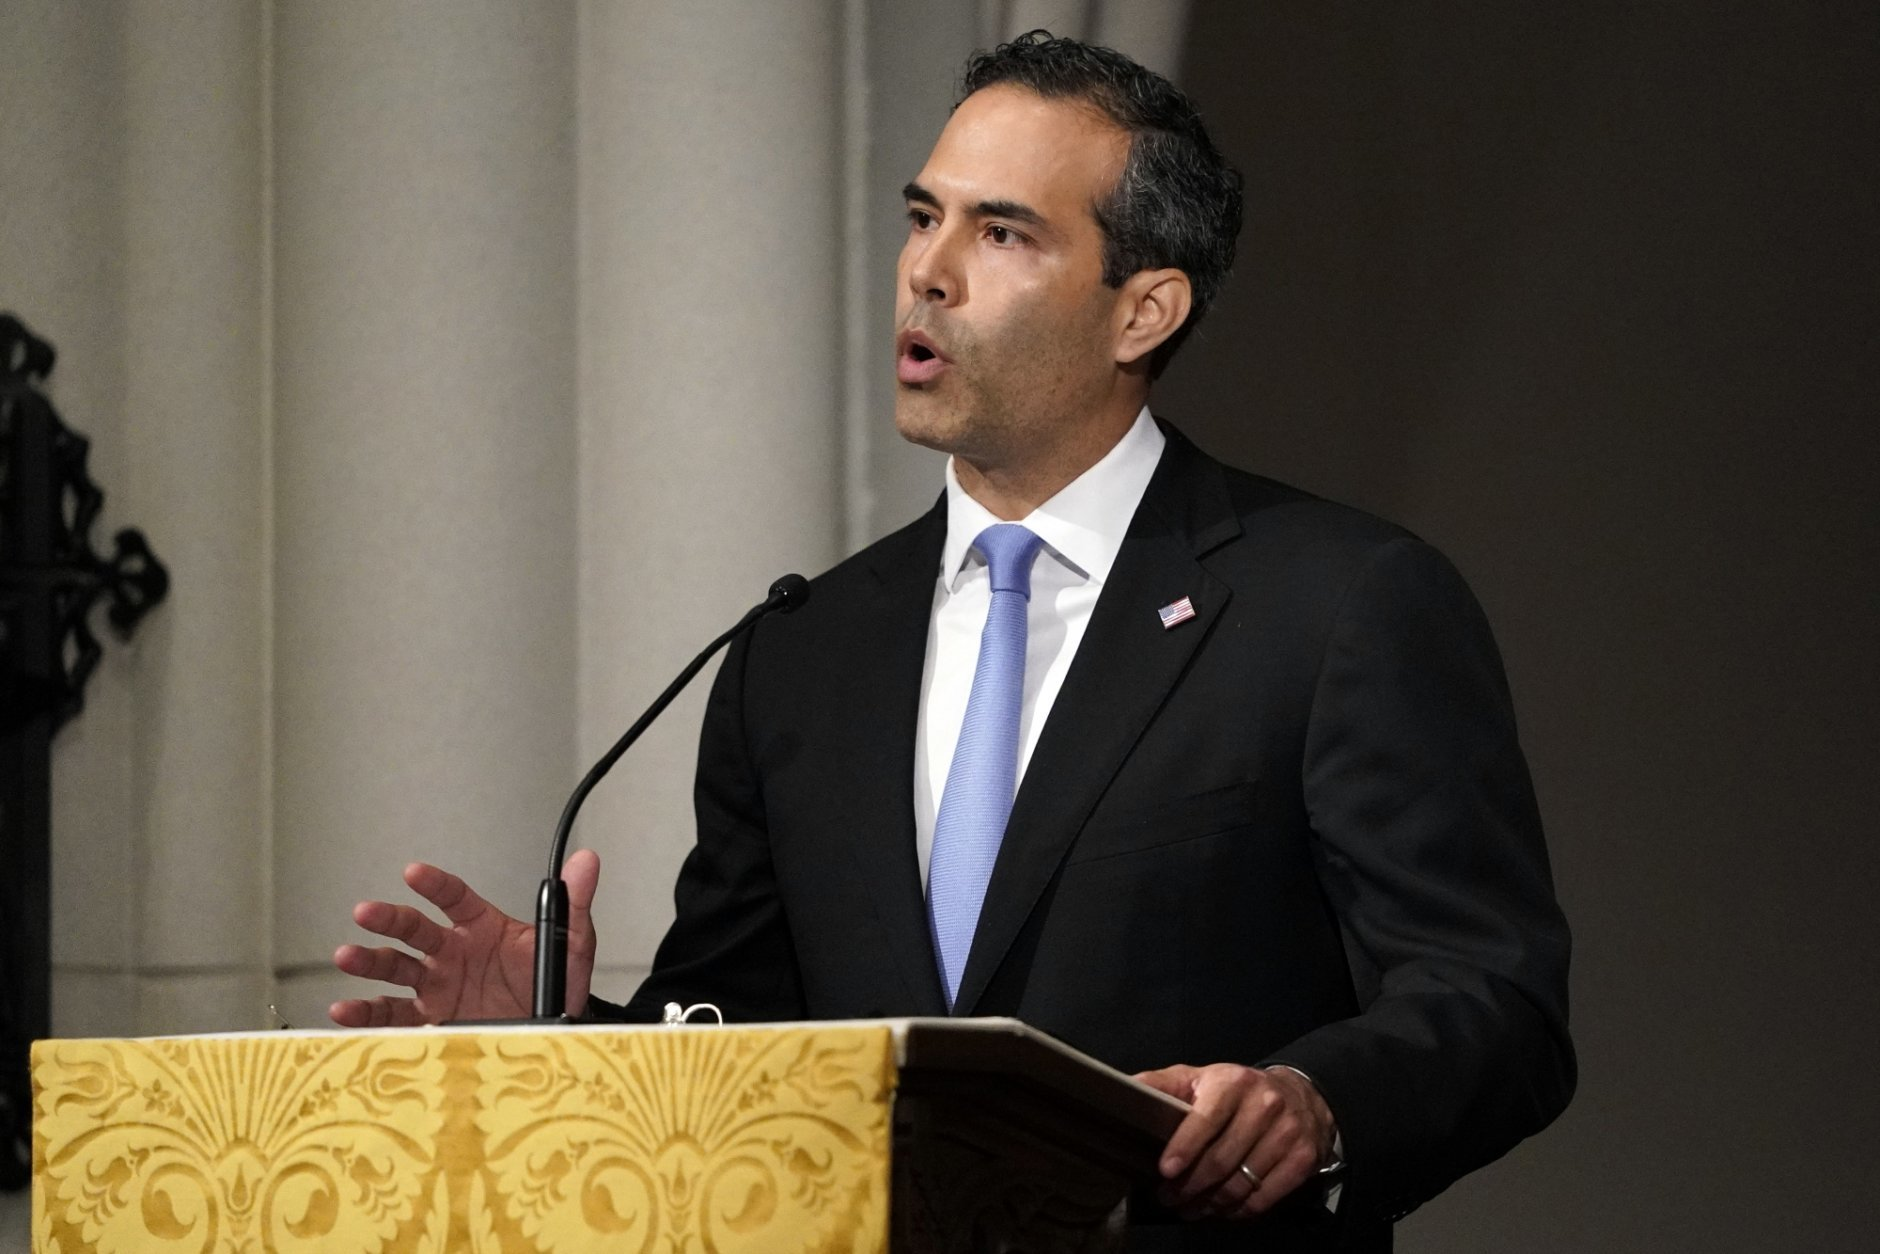 George P. Bush gives a eulogy during the funeral for former President George H.W. Bush at St. Martin's Episcopal Church, Thursday, Dec. 6, 2018, in Houston. (AP Photo/David J. Phillip, Pool)